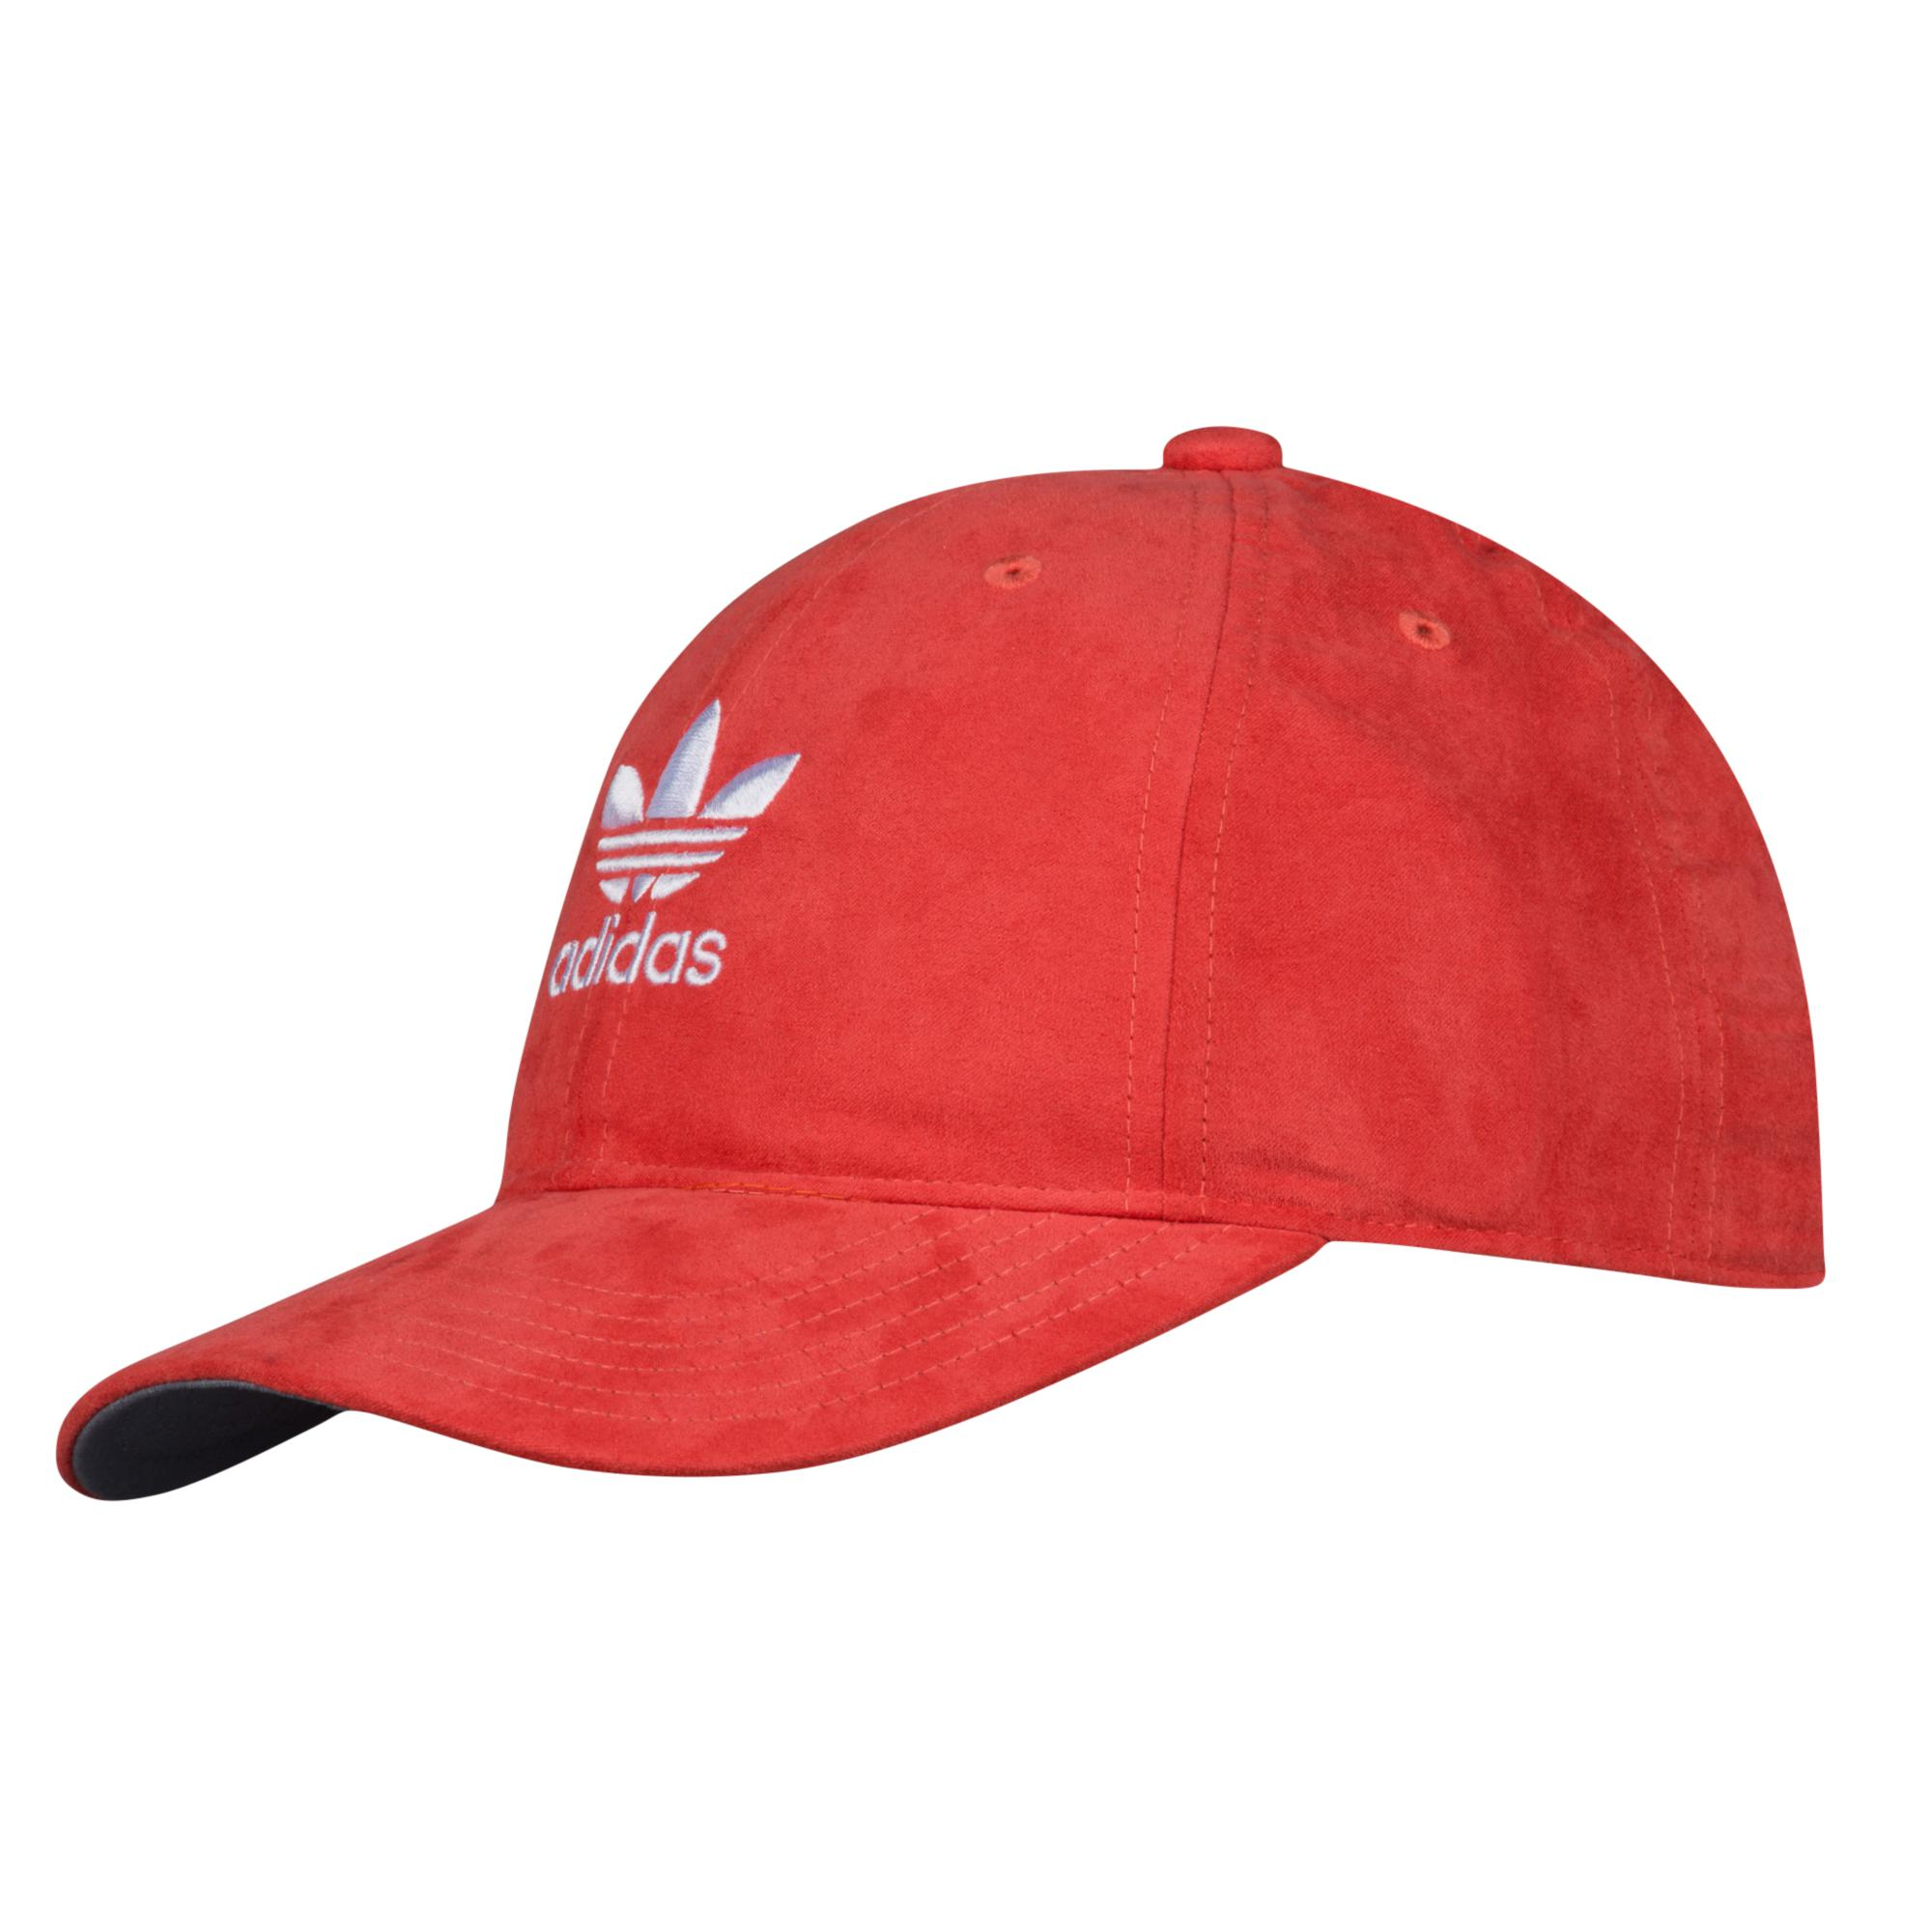 5c2799e1c7c Lyst - adidas Originals Suede Relaxed Strapback Hat in Red - Save 58%